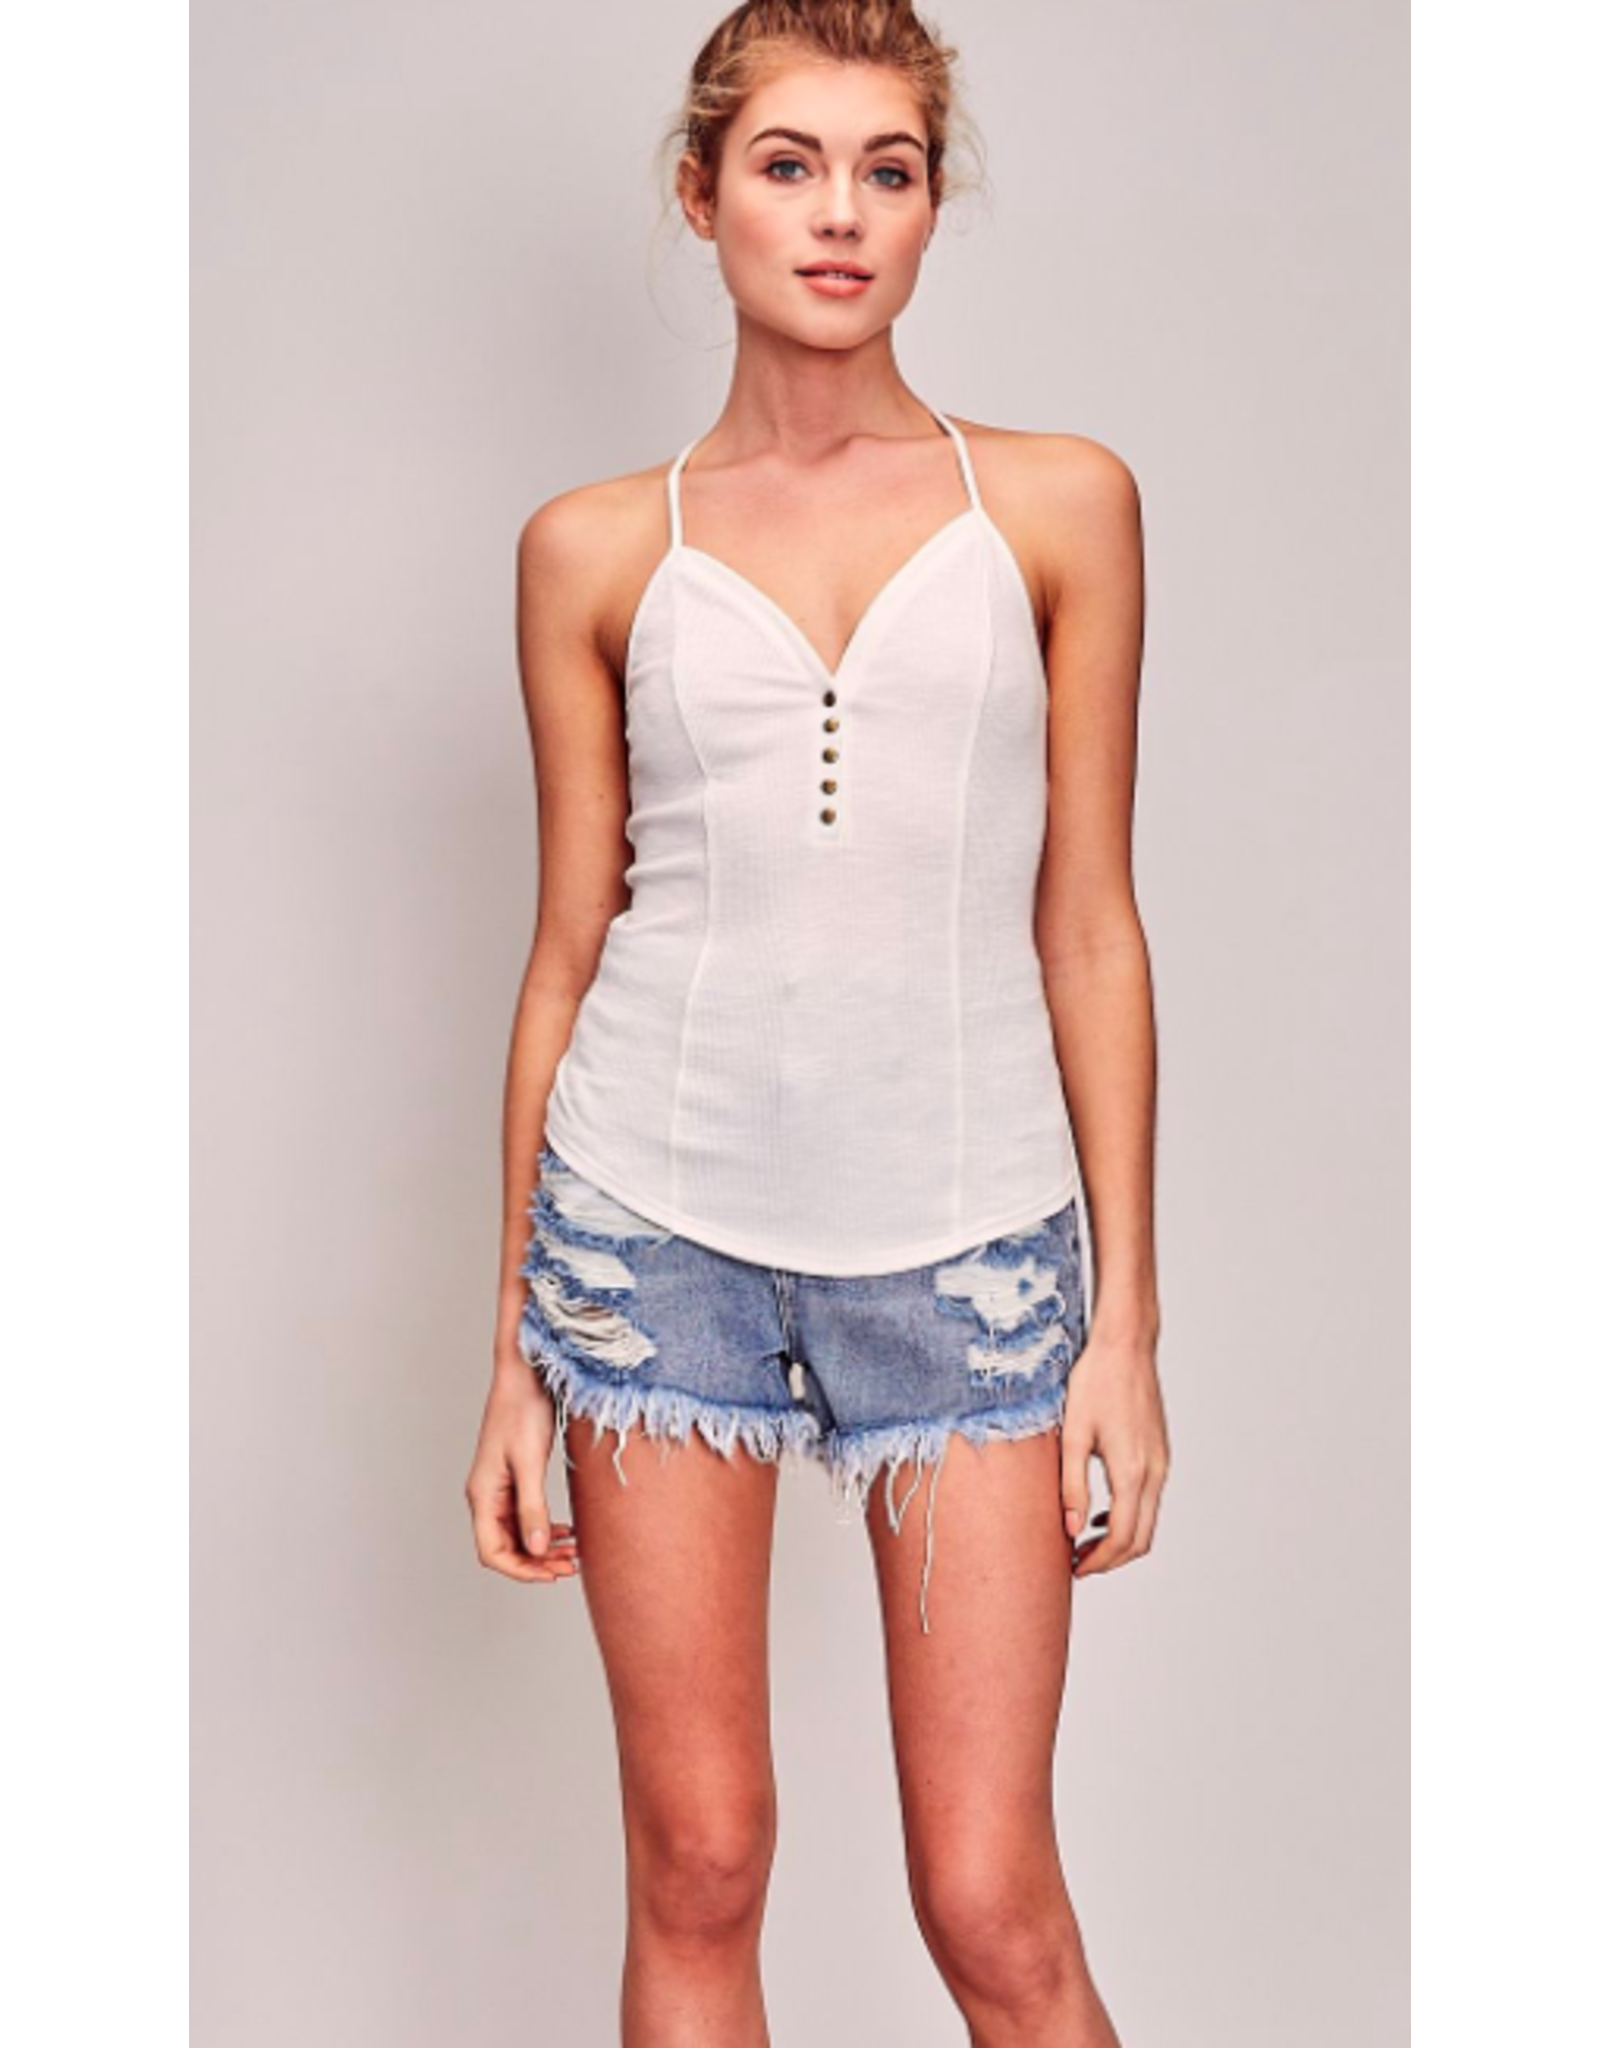 BUTTON UP RACER BACK TANK TOP